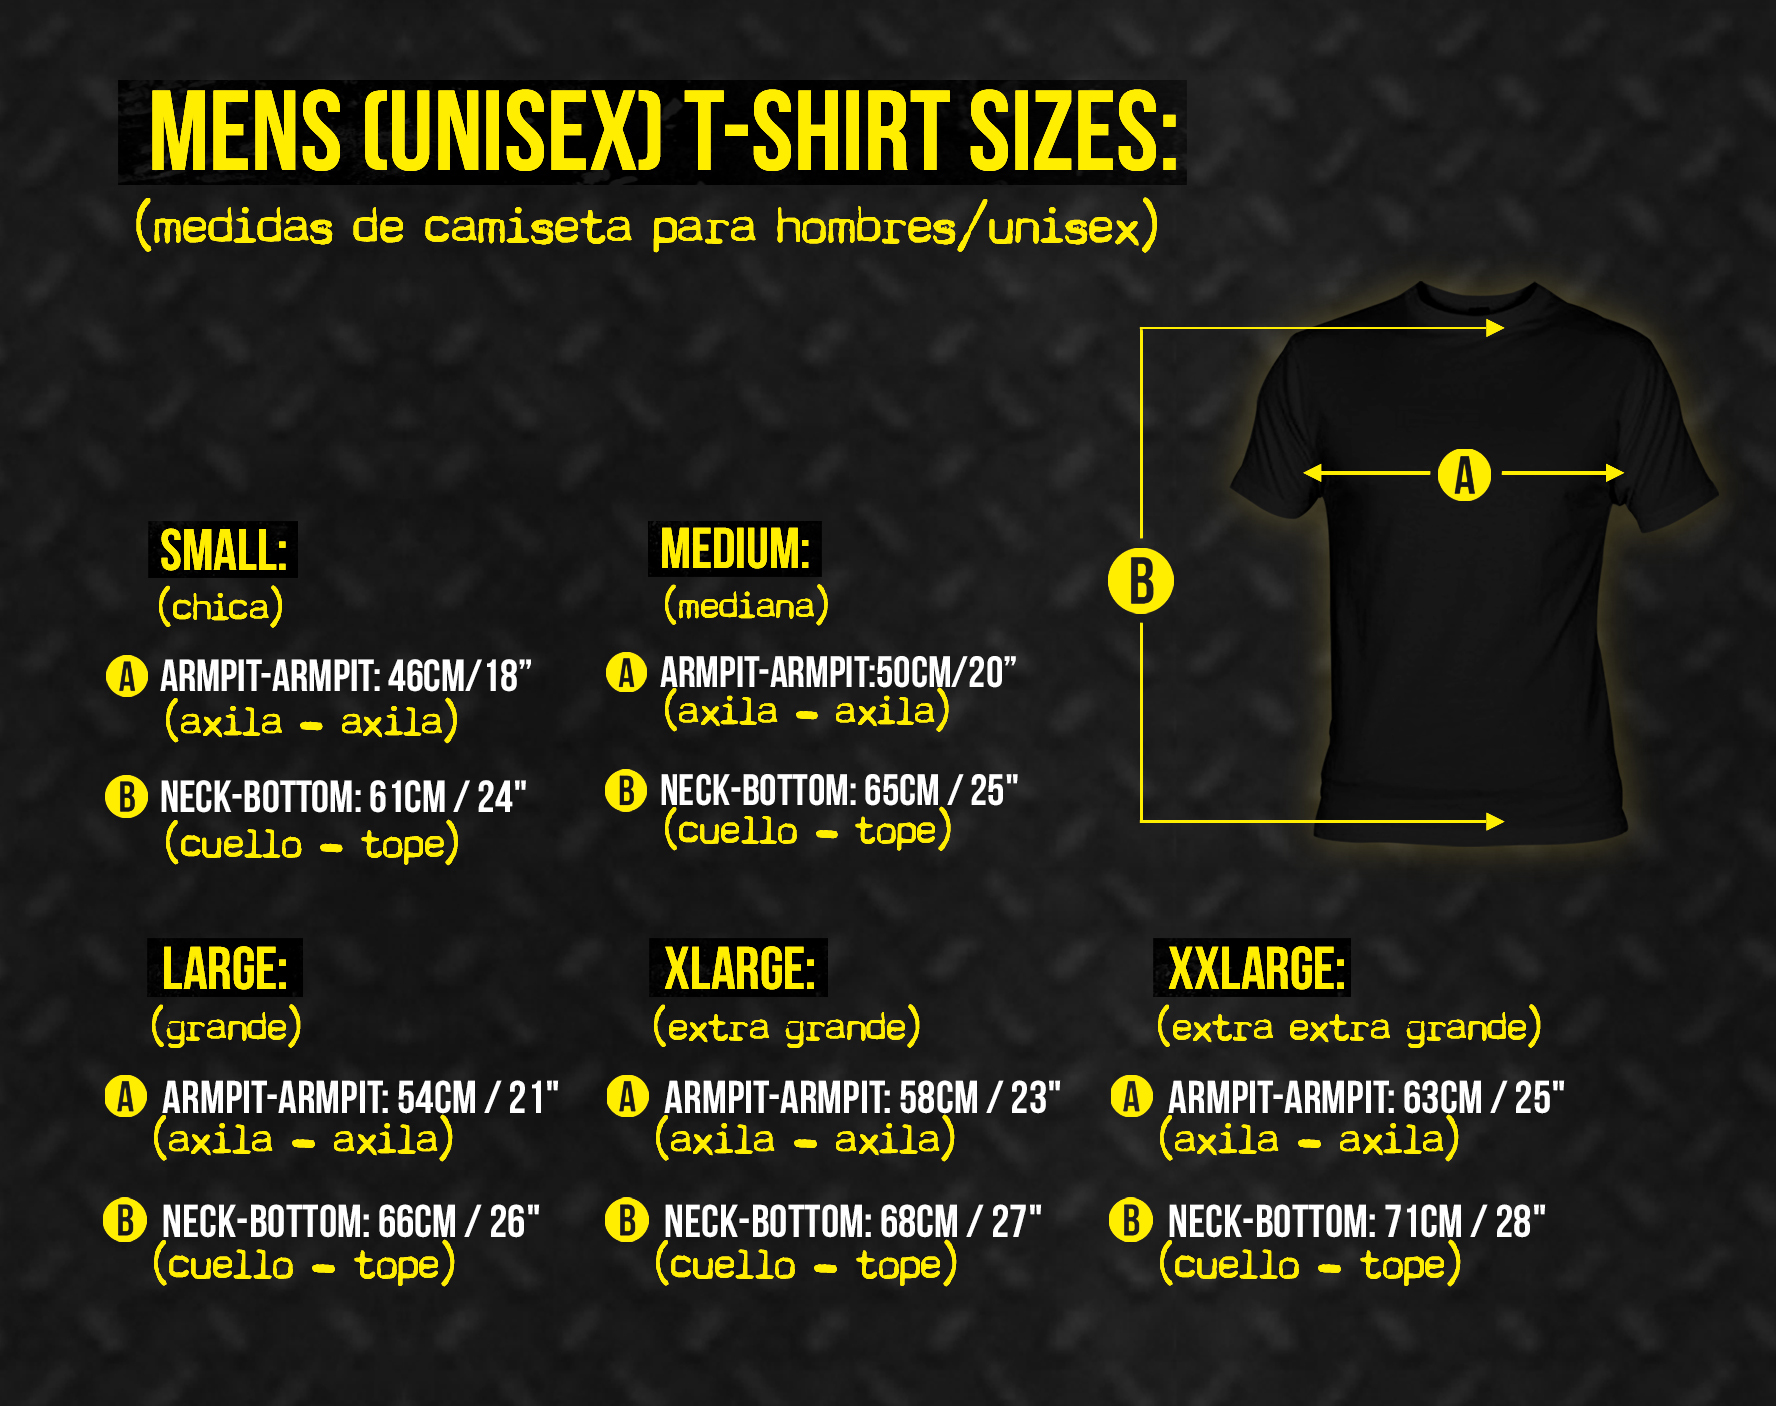 mens-unisex-shirt-sizes-actualized.jpg